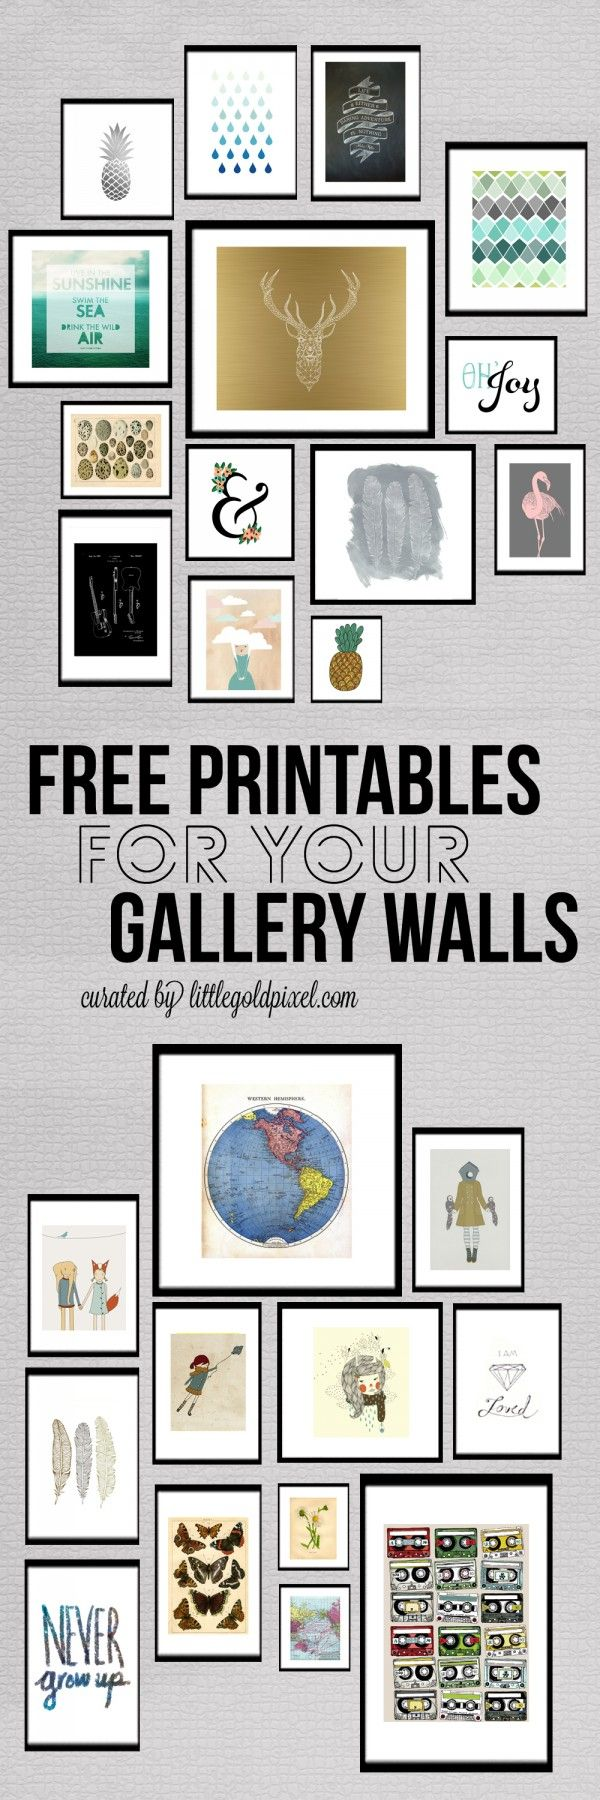 Roundup: 26 Free Printables for Gallery Walls and resources for lots more